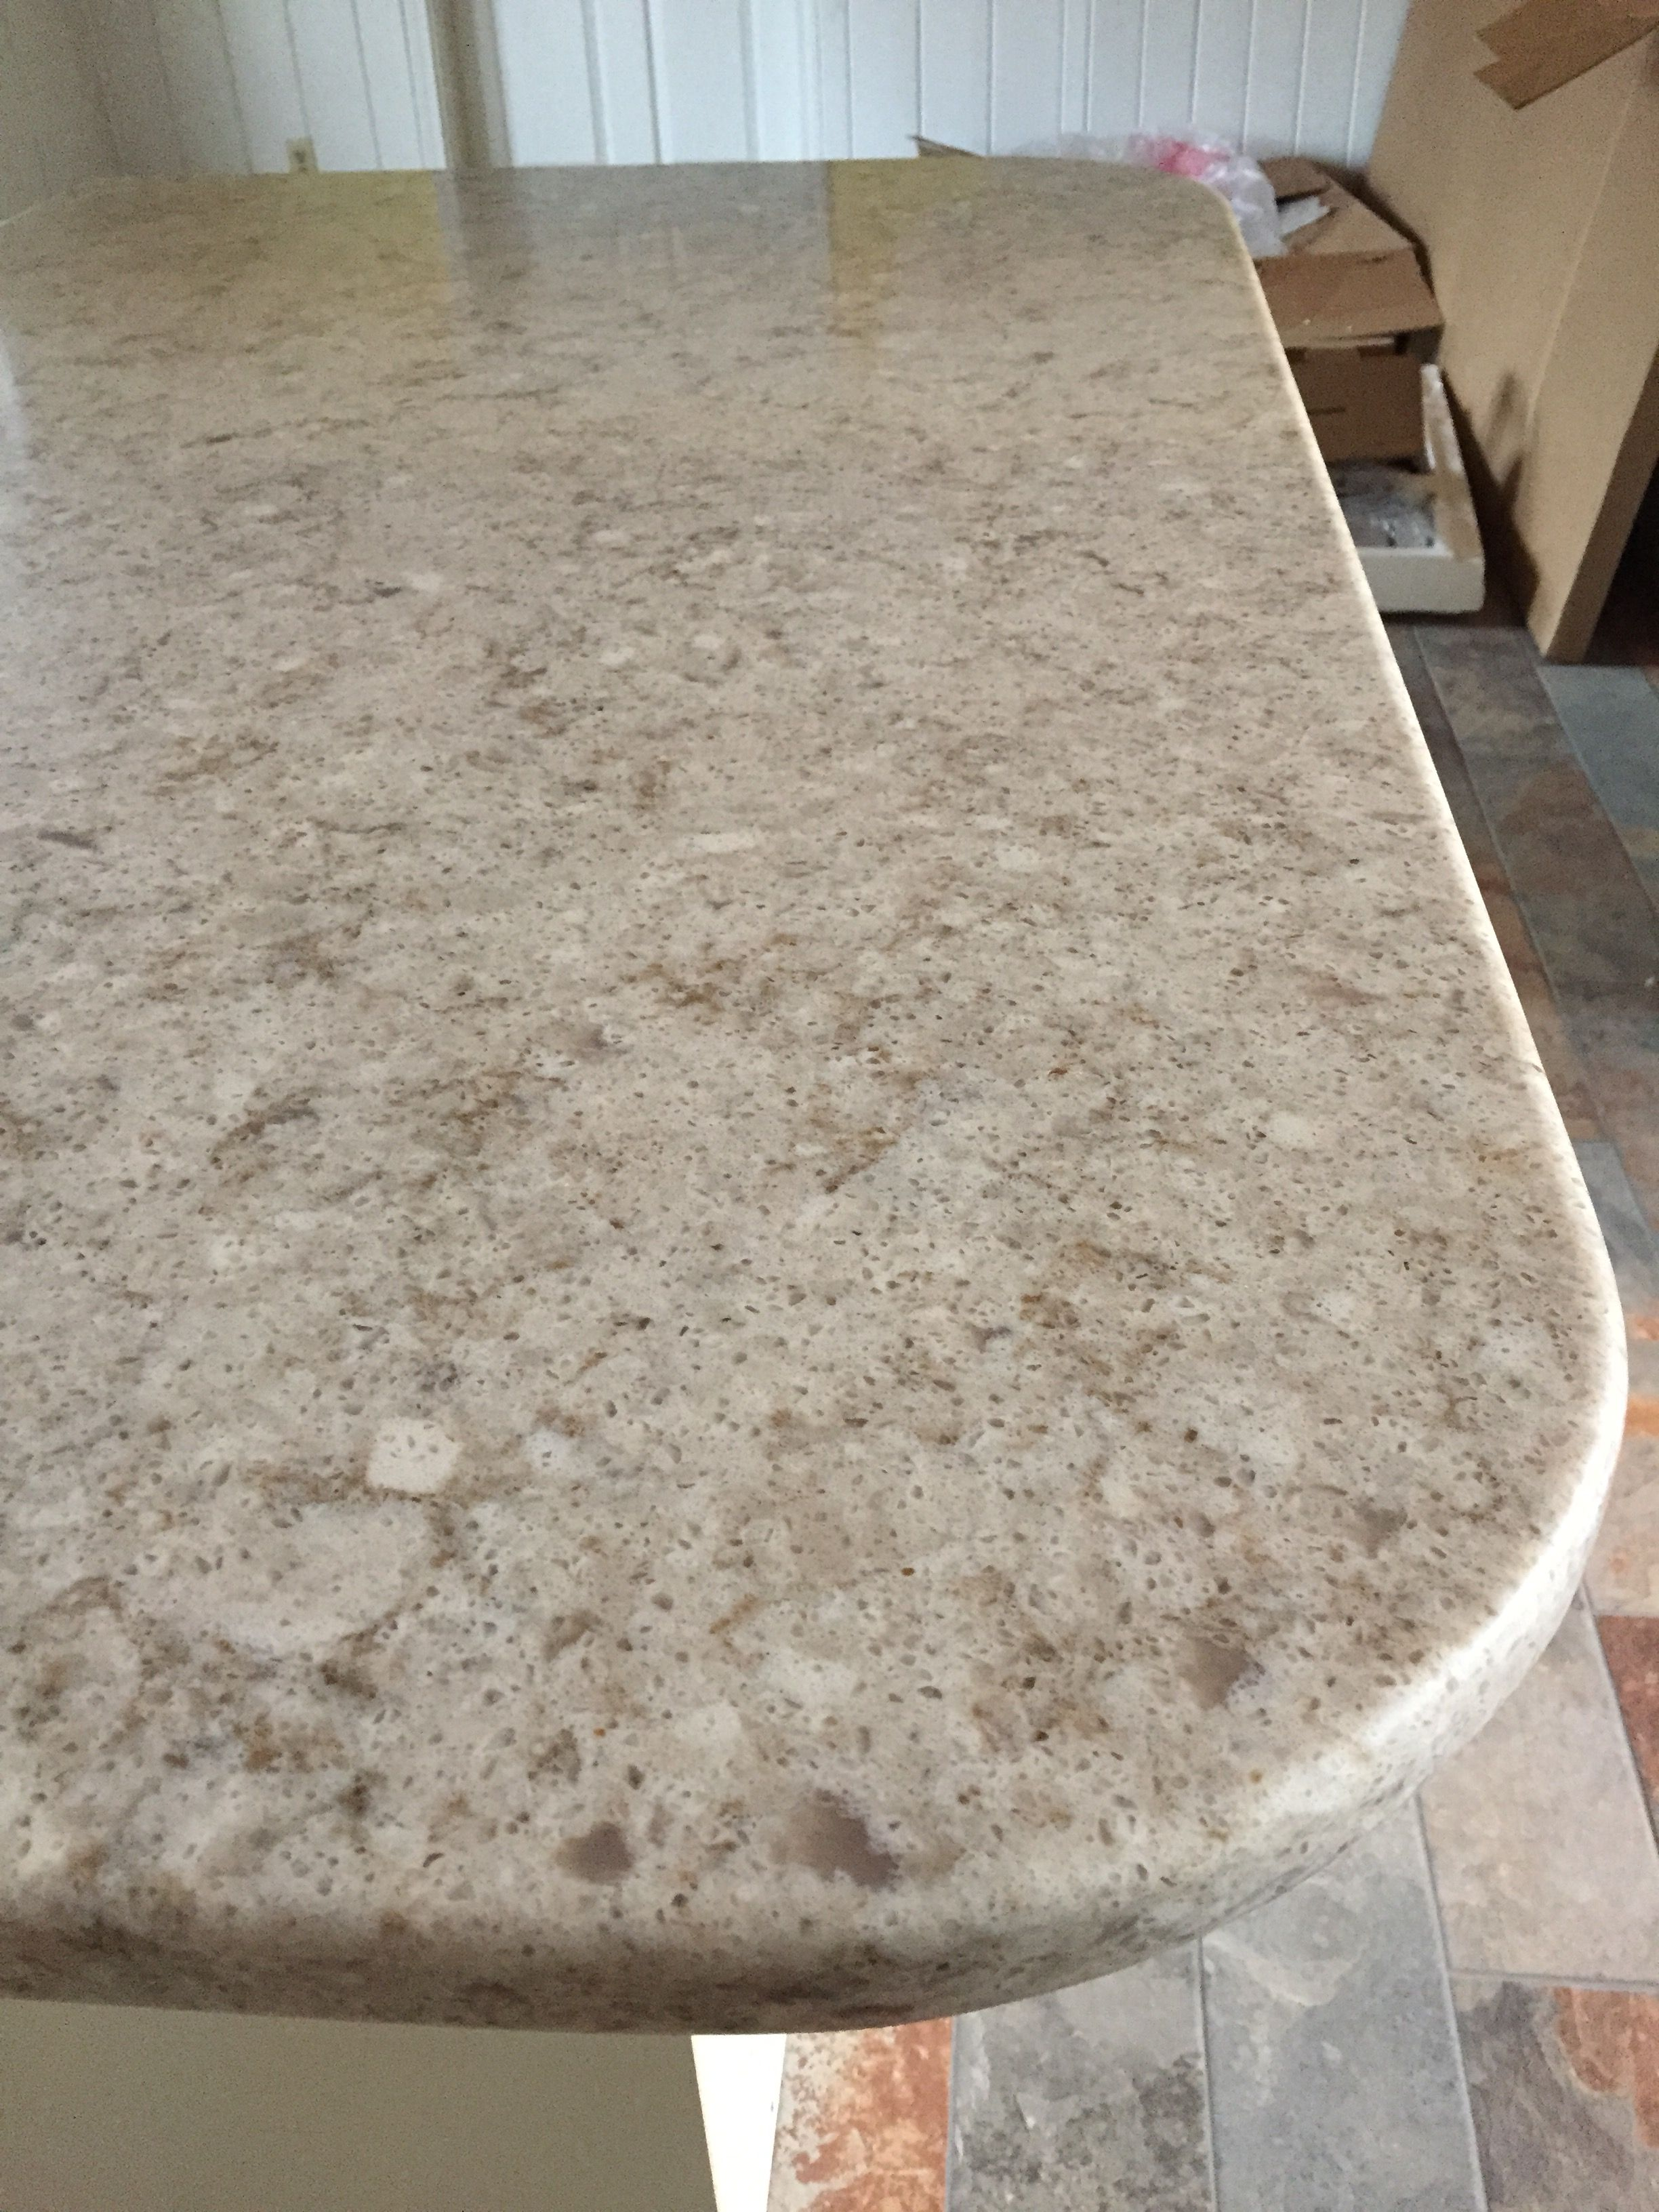 How Much Are Quartz Countertops Installed New Quartz Countertop Installed Silestone Quasar